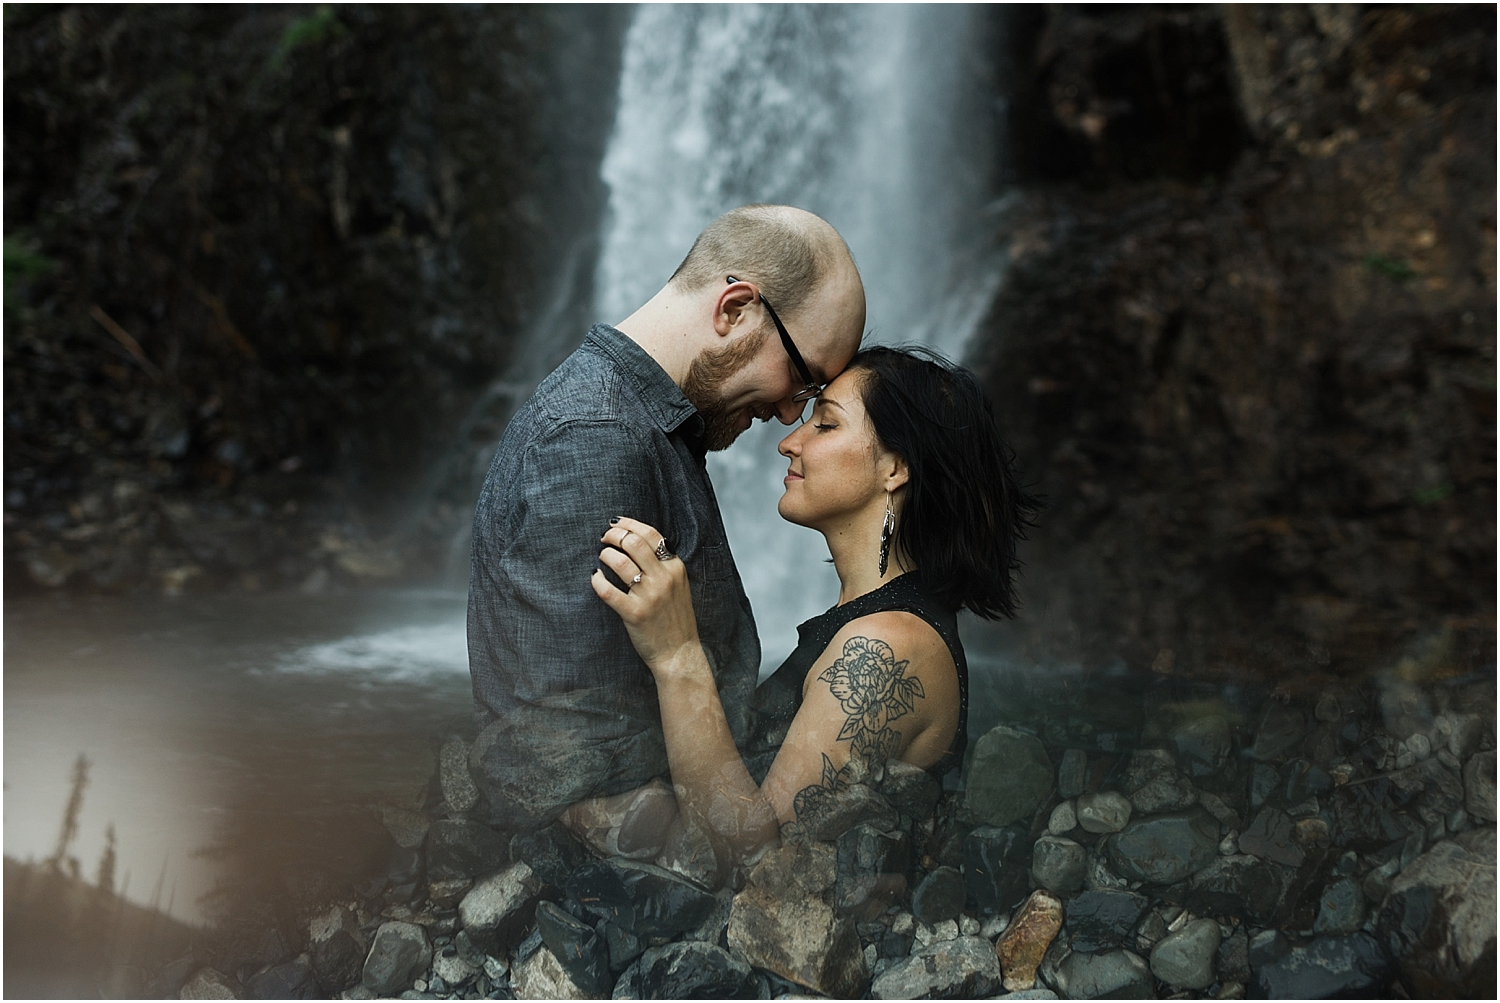 Franklin Falls Adventure Engagement Session | Washington Adventure Wedding Photographer